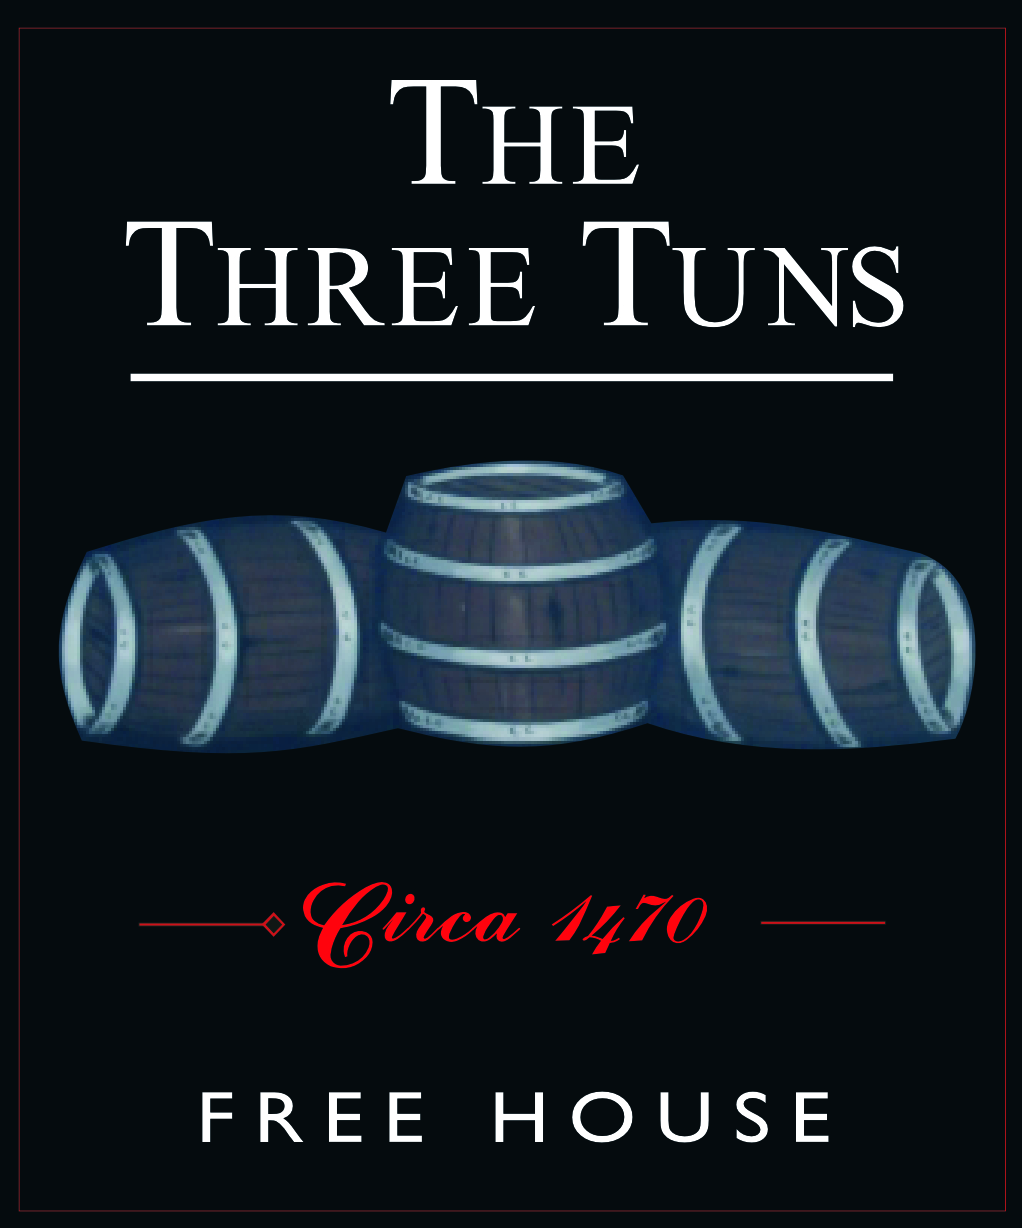 The Three Tuns Lower Halstow